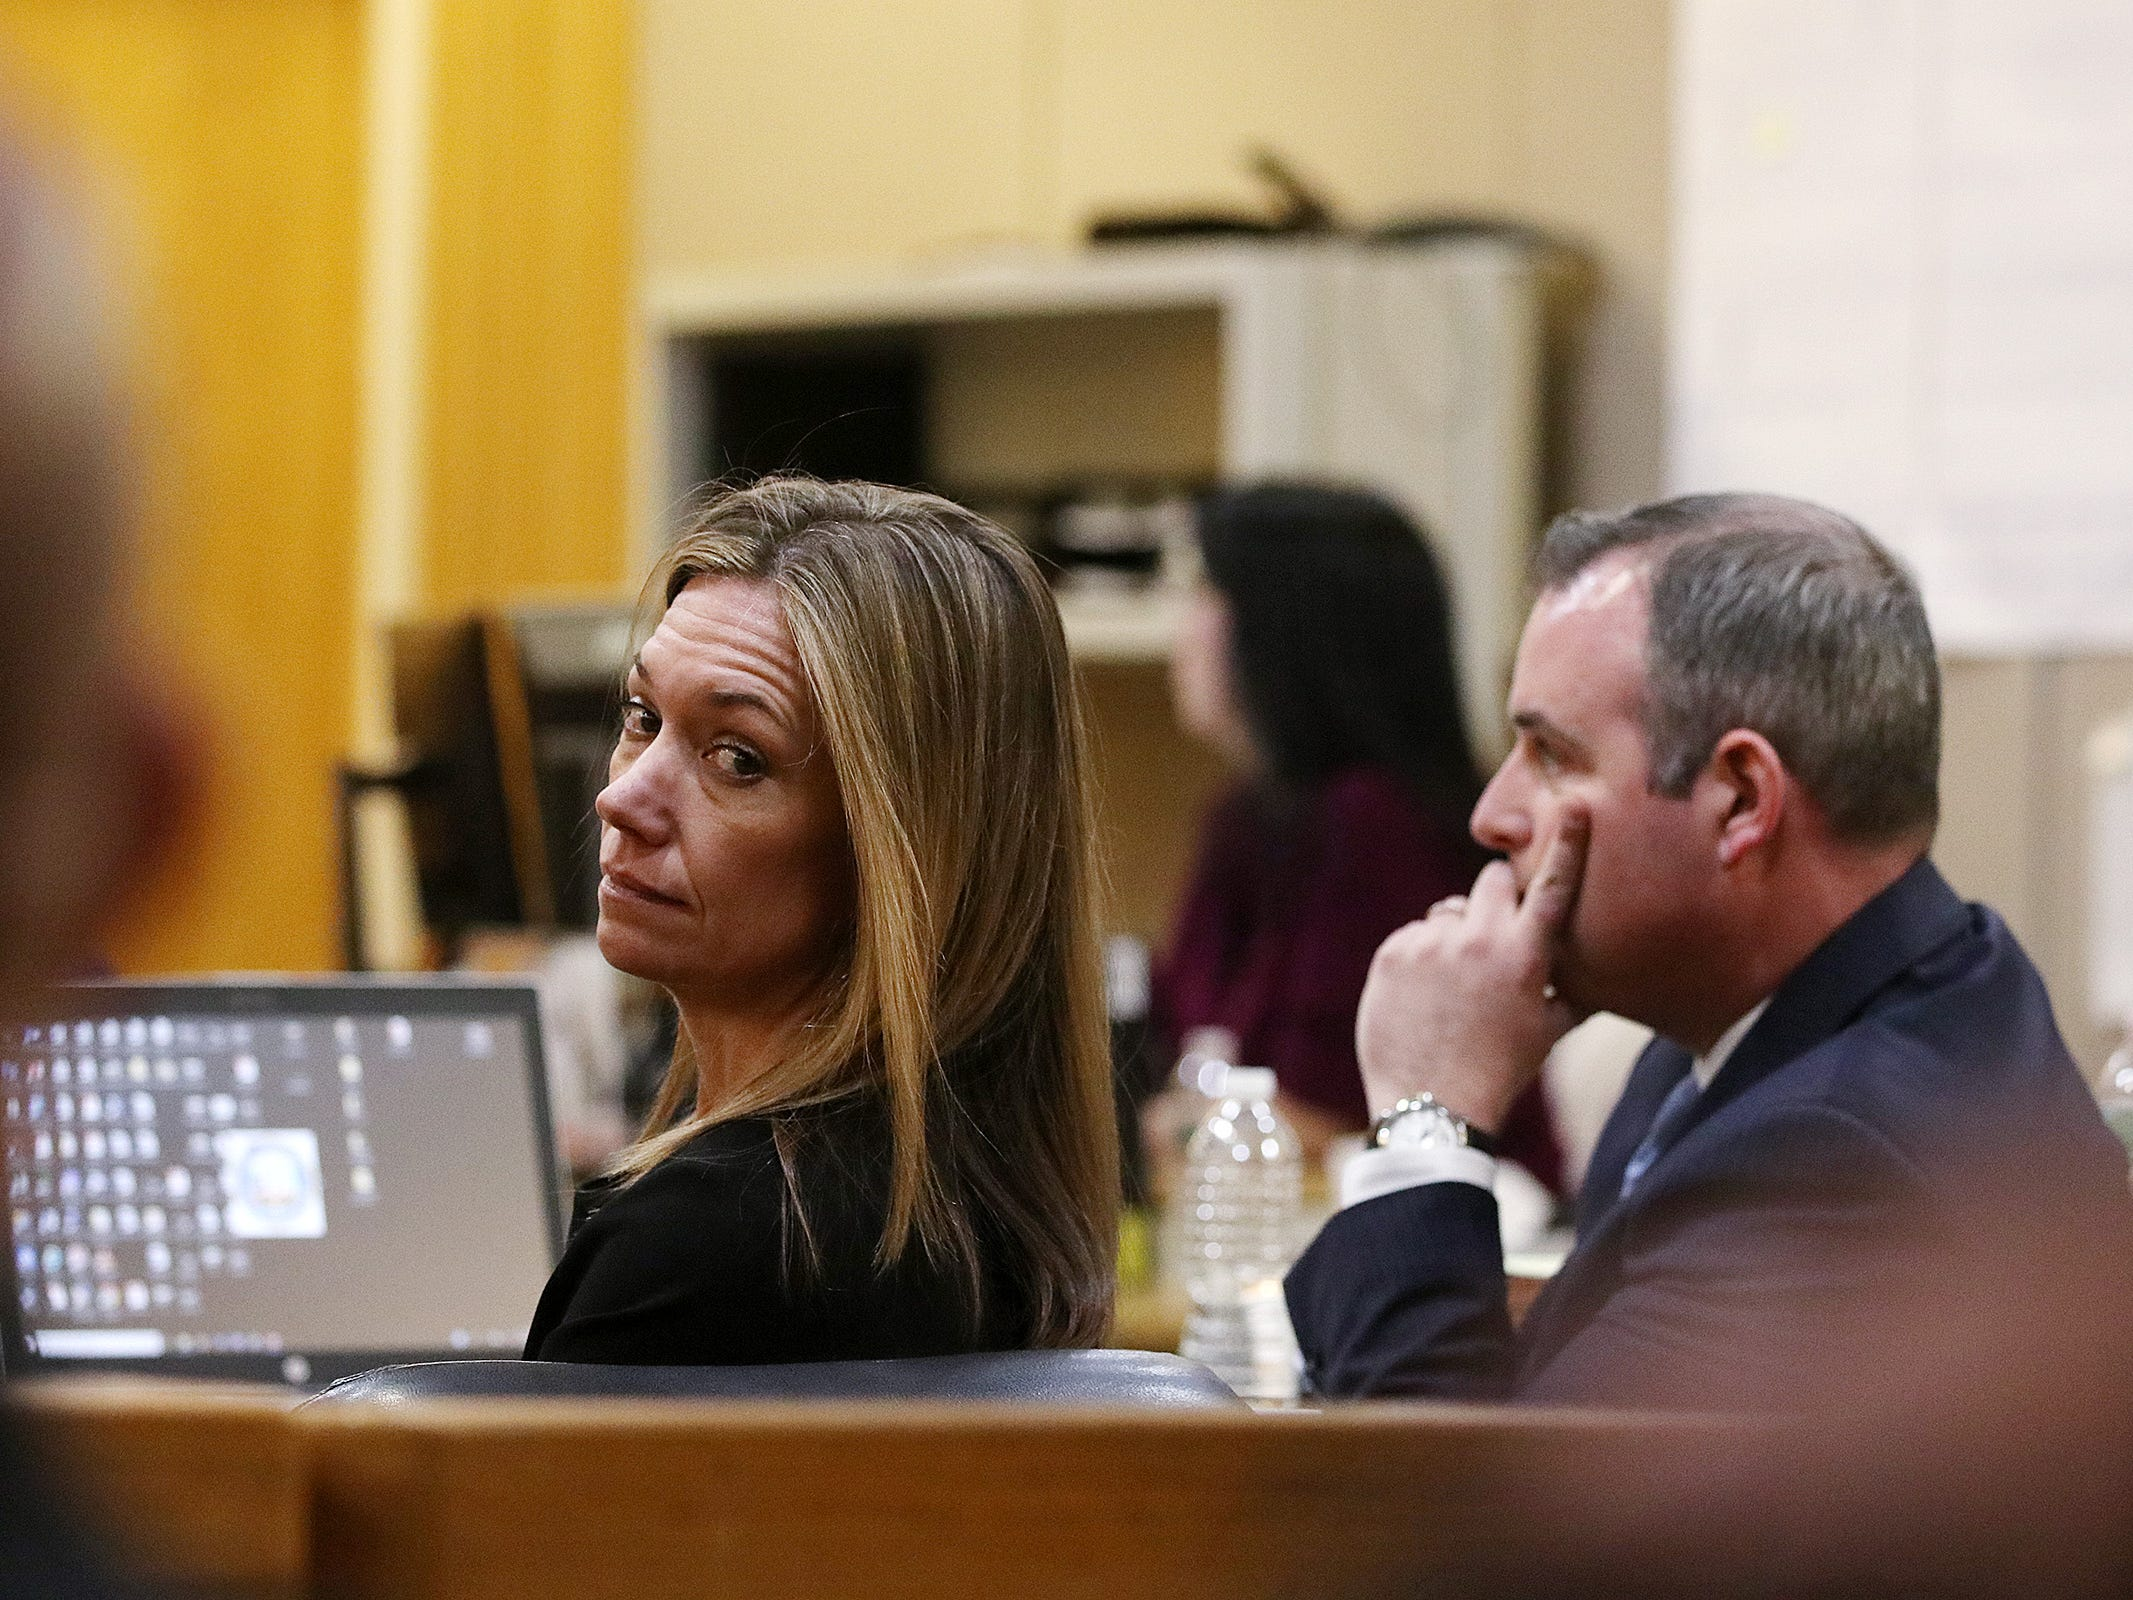 Meghan Doyle and Christopher Decker, both assistant Monmouth County prosecutors, listen as Carlos Diaz-Cobo, defense attorney, makes his closing arguments during the trial of Liam McAtasney, who is charged with the murder of former high school classmate, Sarah Stern, before Superior Court Judge Richard W. English at the Monmouth County Courthouse in Freehold, NJ Friday, February 22, 2019.